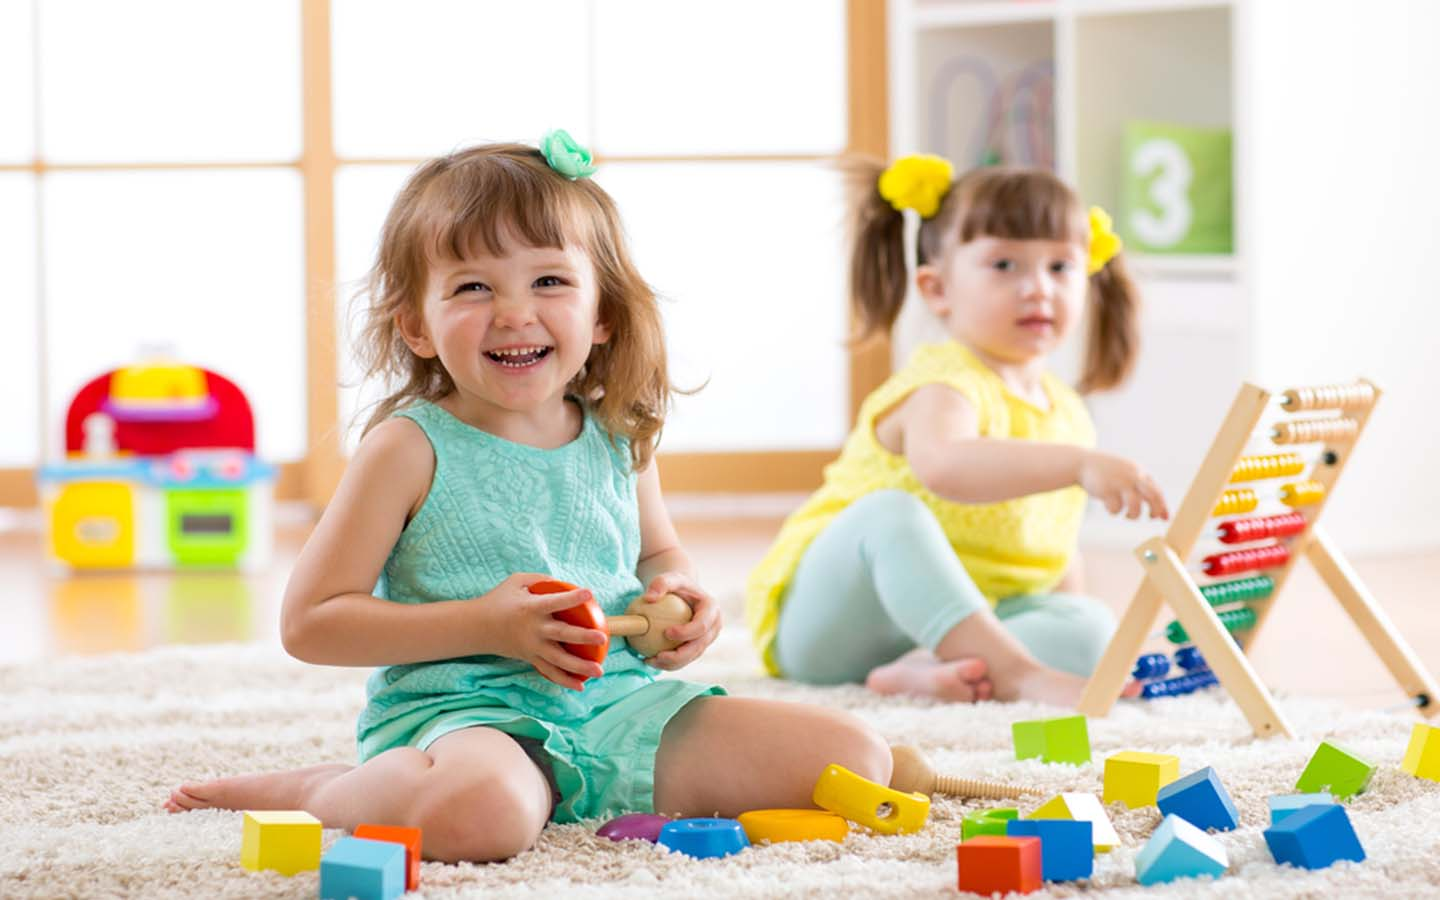 Kids playing together at a playschool